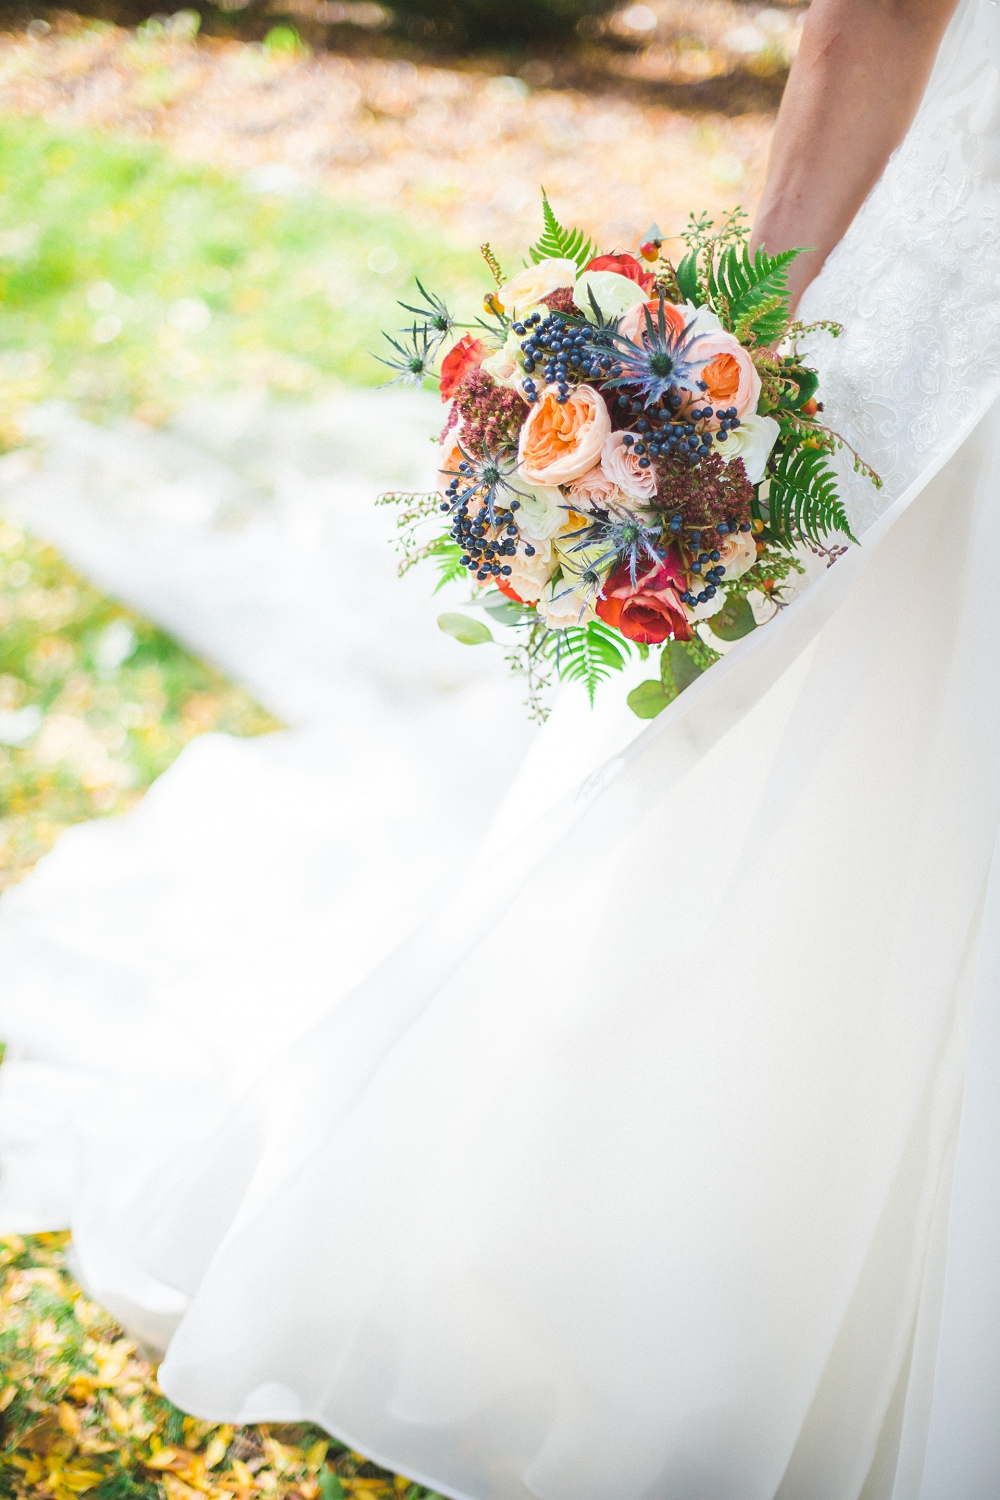 Rochelle Louise Photography, floral design, Minneapolis wedding photographer, wedding flowers, wedding bouquet